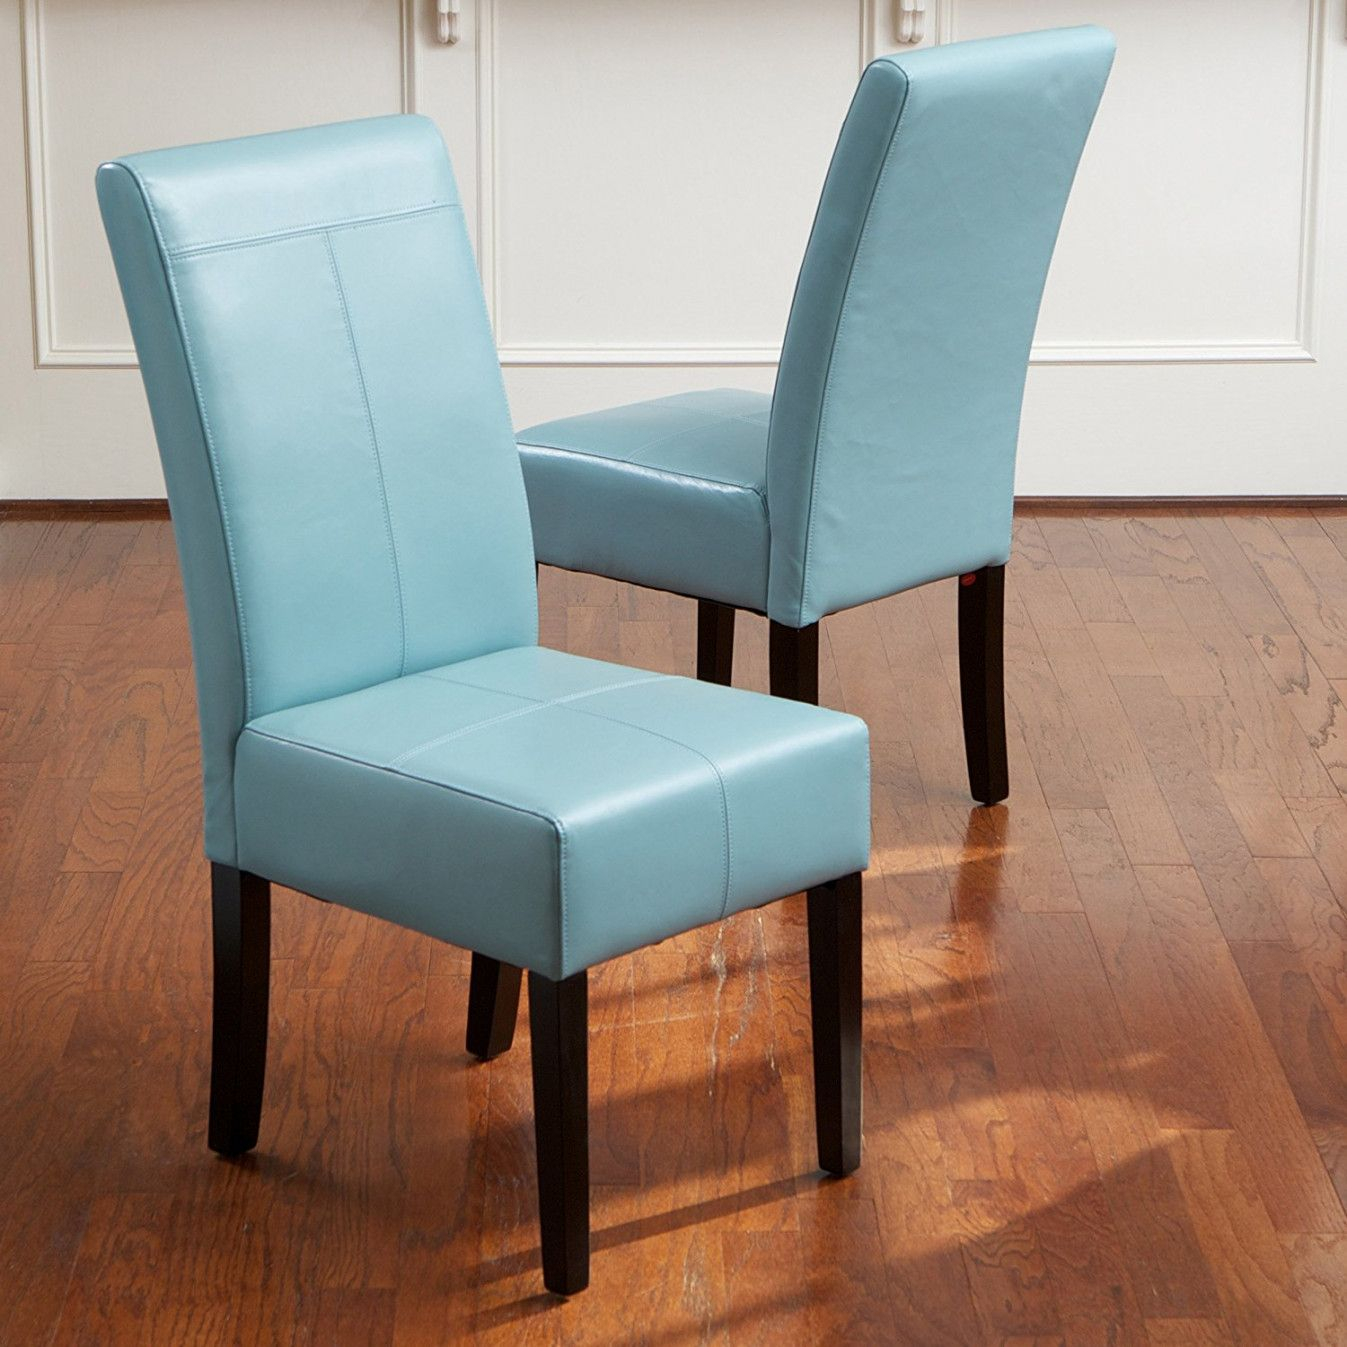 20 Turquoise Leather Dining Chairs Modern Furniture Check More At Http